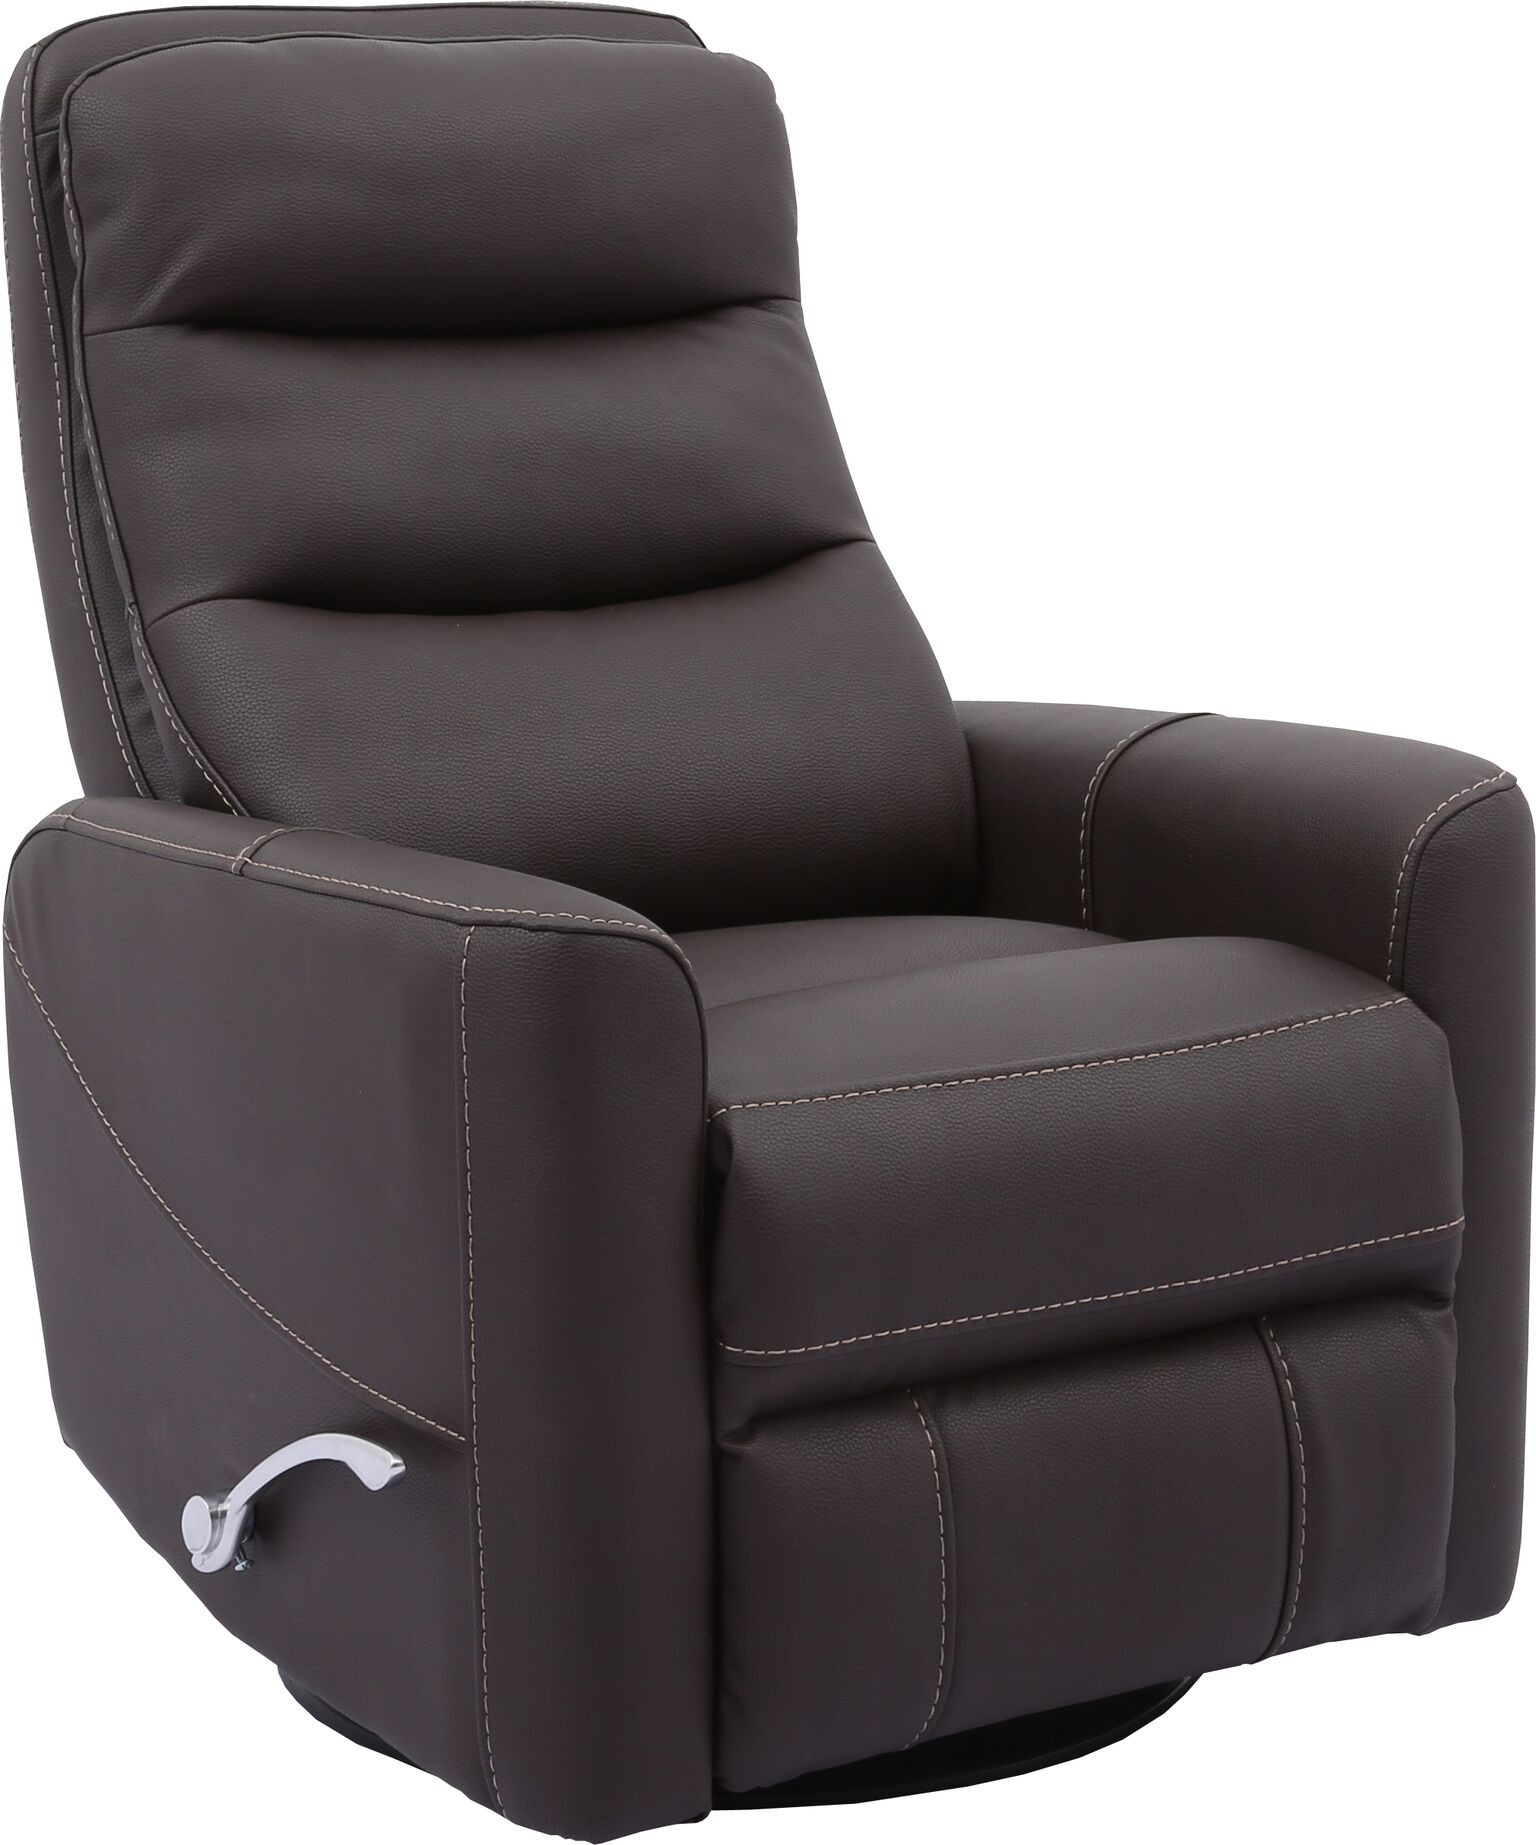 Featured Image of Hercules Chocolate Swivel Glider Recliners